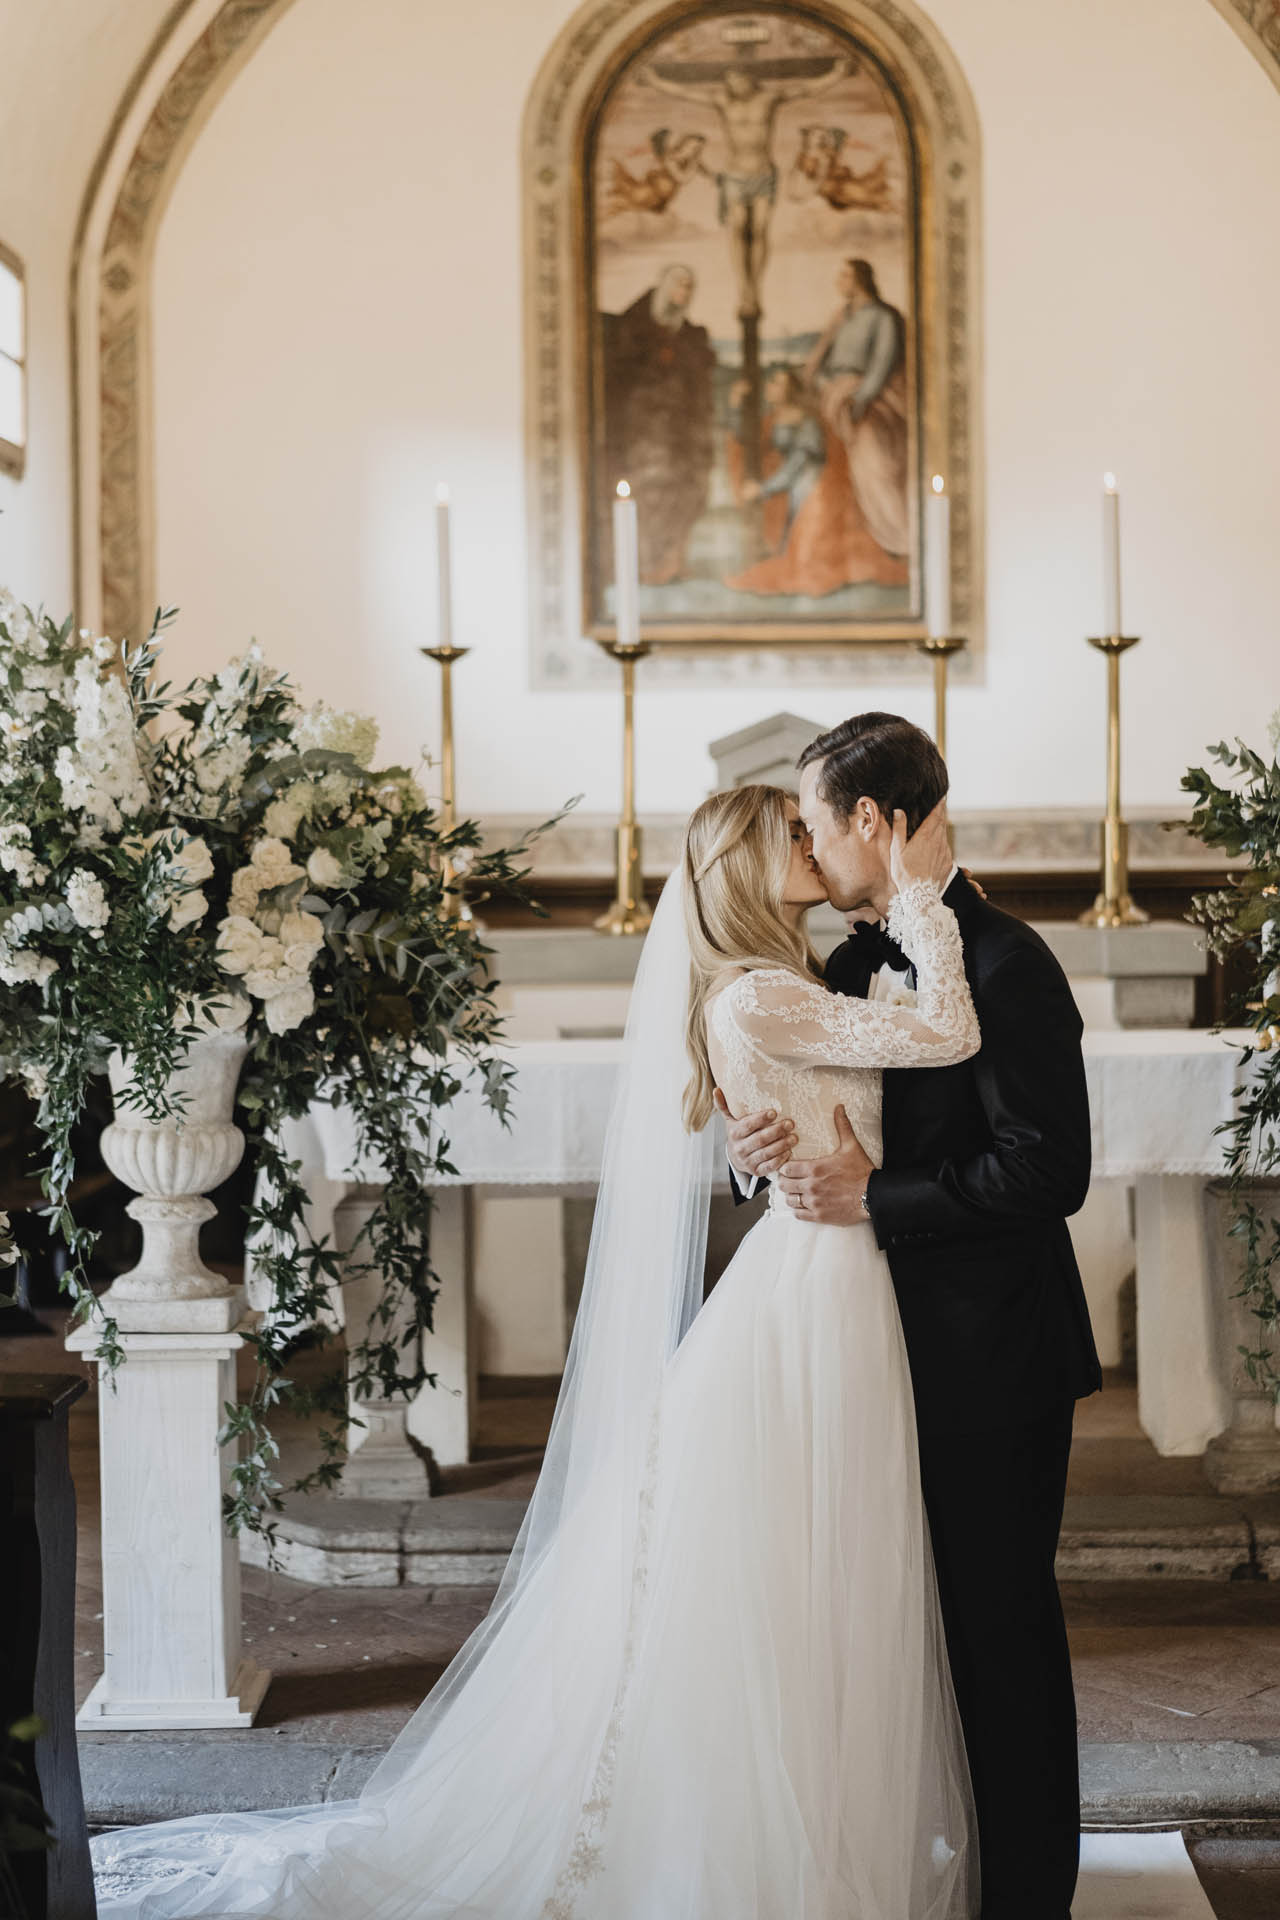 - 46 :: Intimate elegance: an intimate wedding at Il Borro :: Luxury wedding photography - 45 ::  - 46